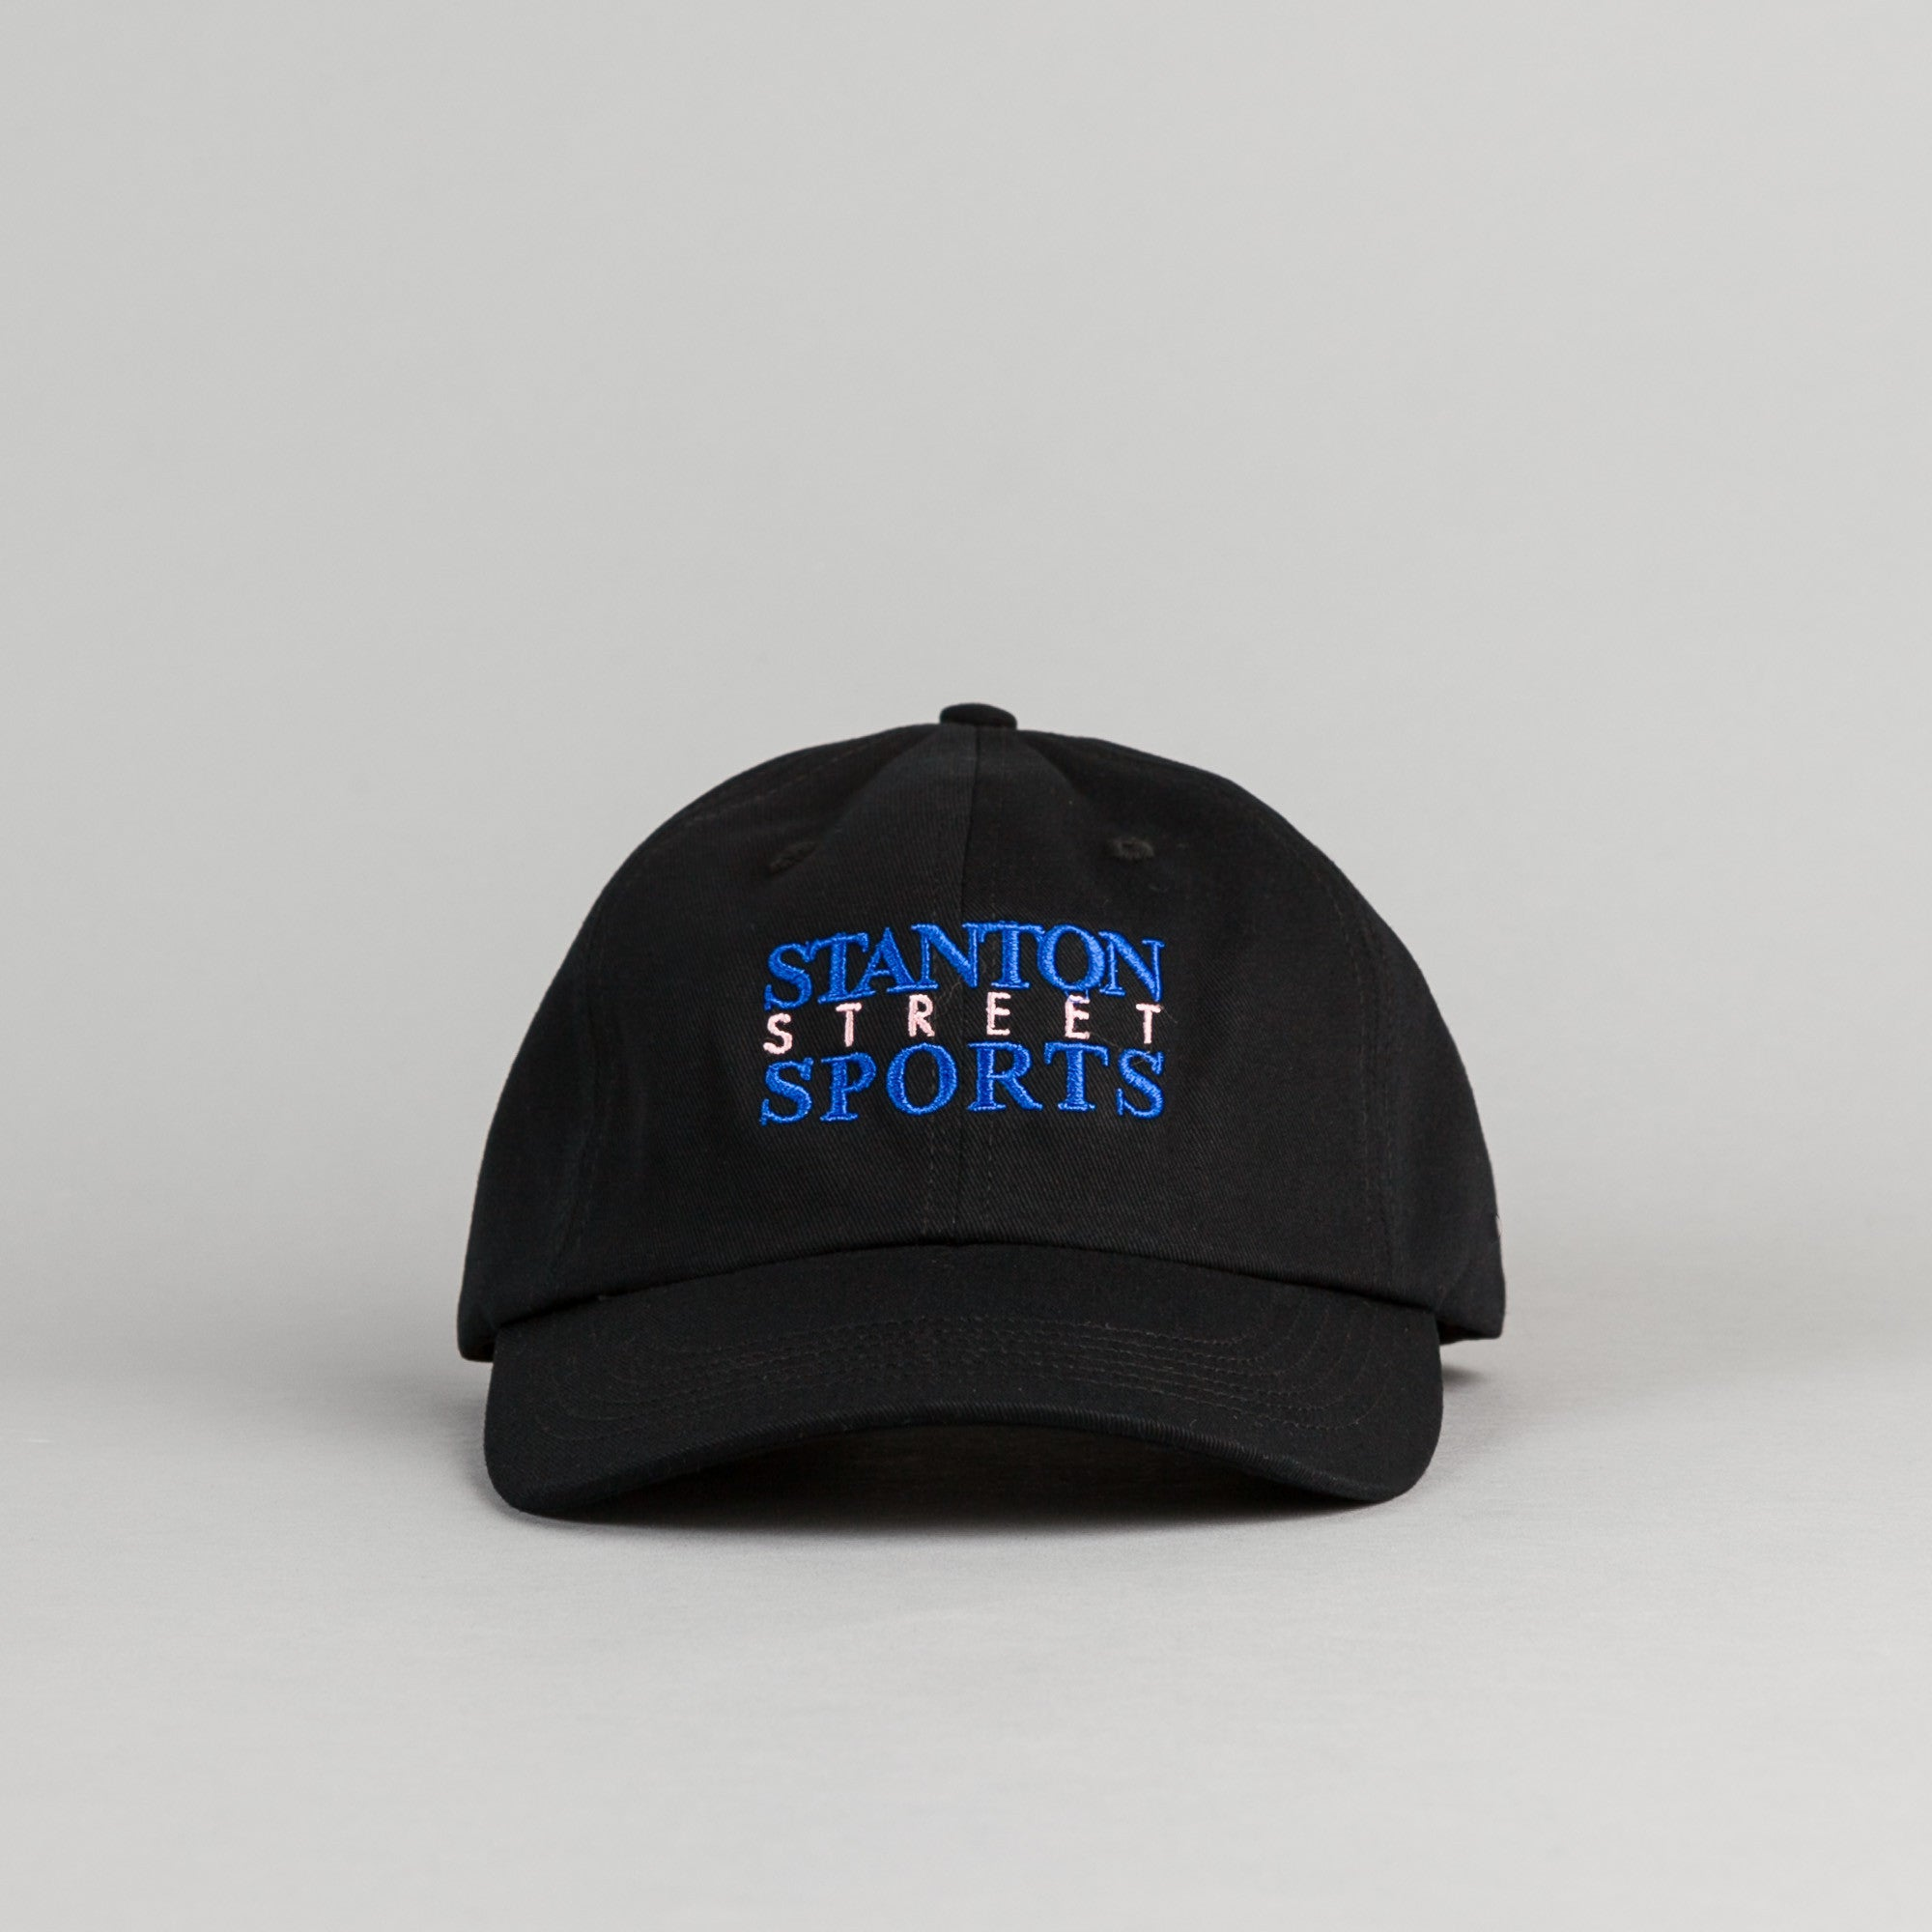 Stanton Street Sports News Cap - Black